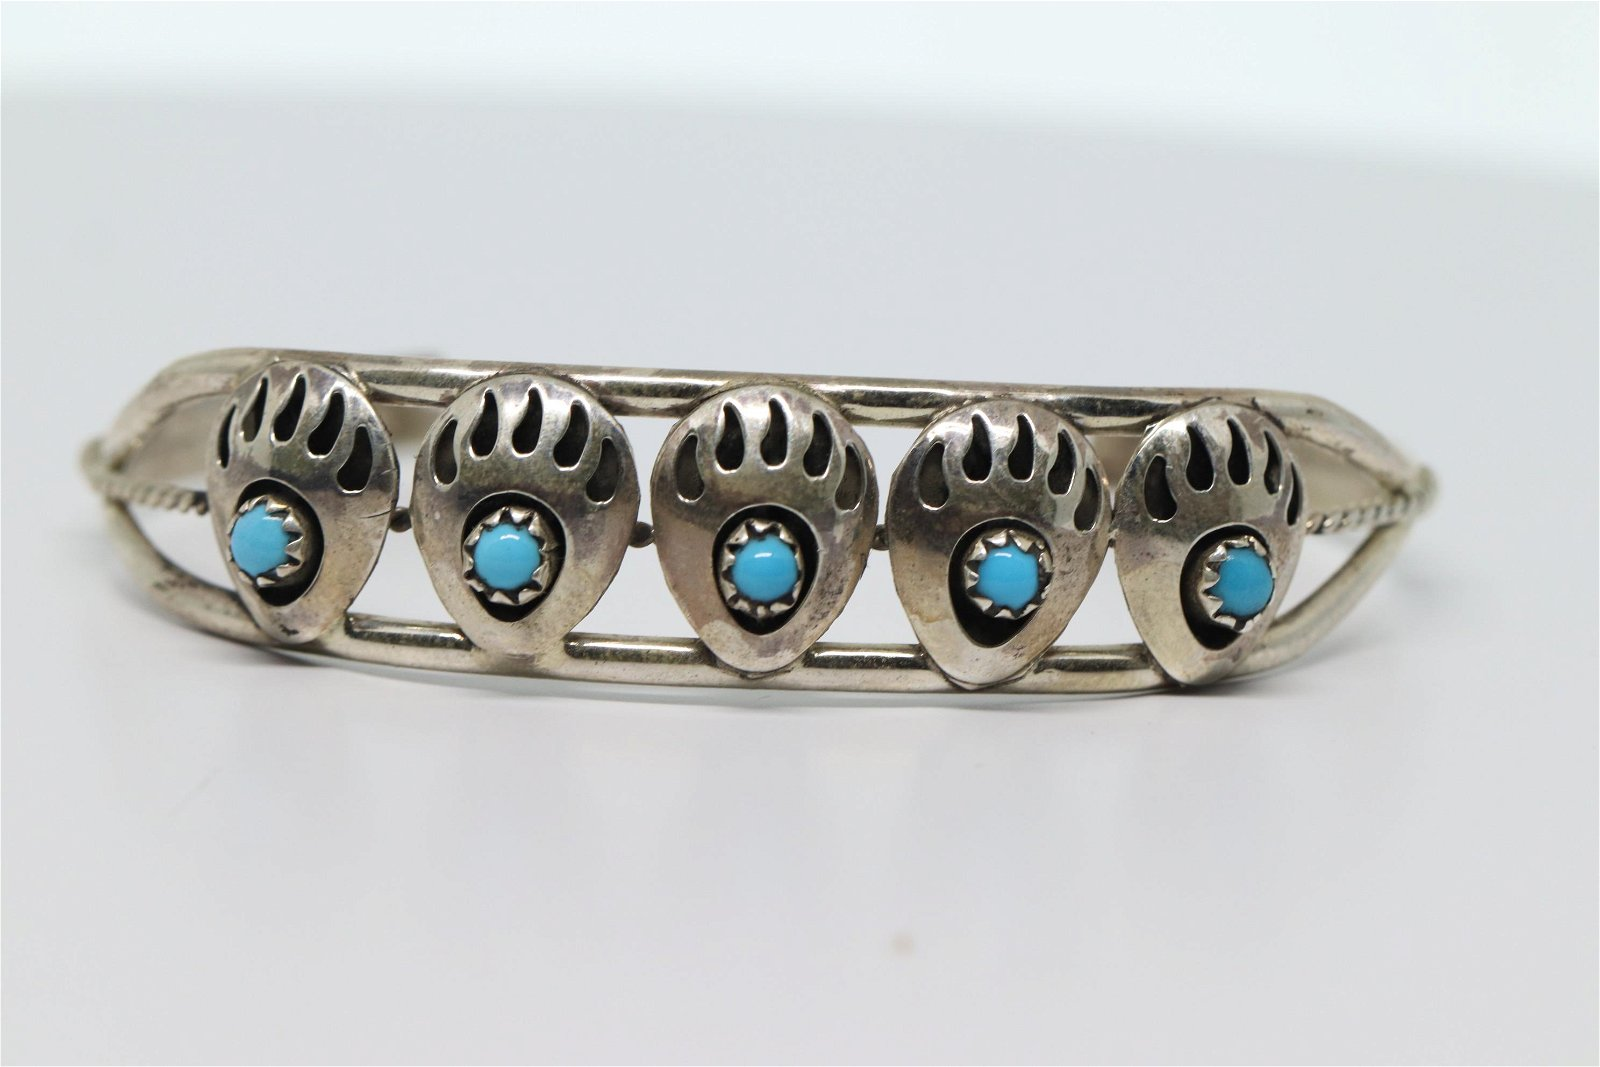 Navajo Bear Paw bracelet by Janice Spencer